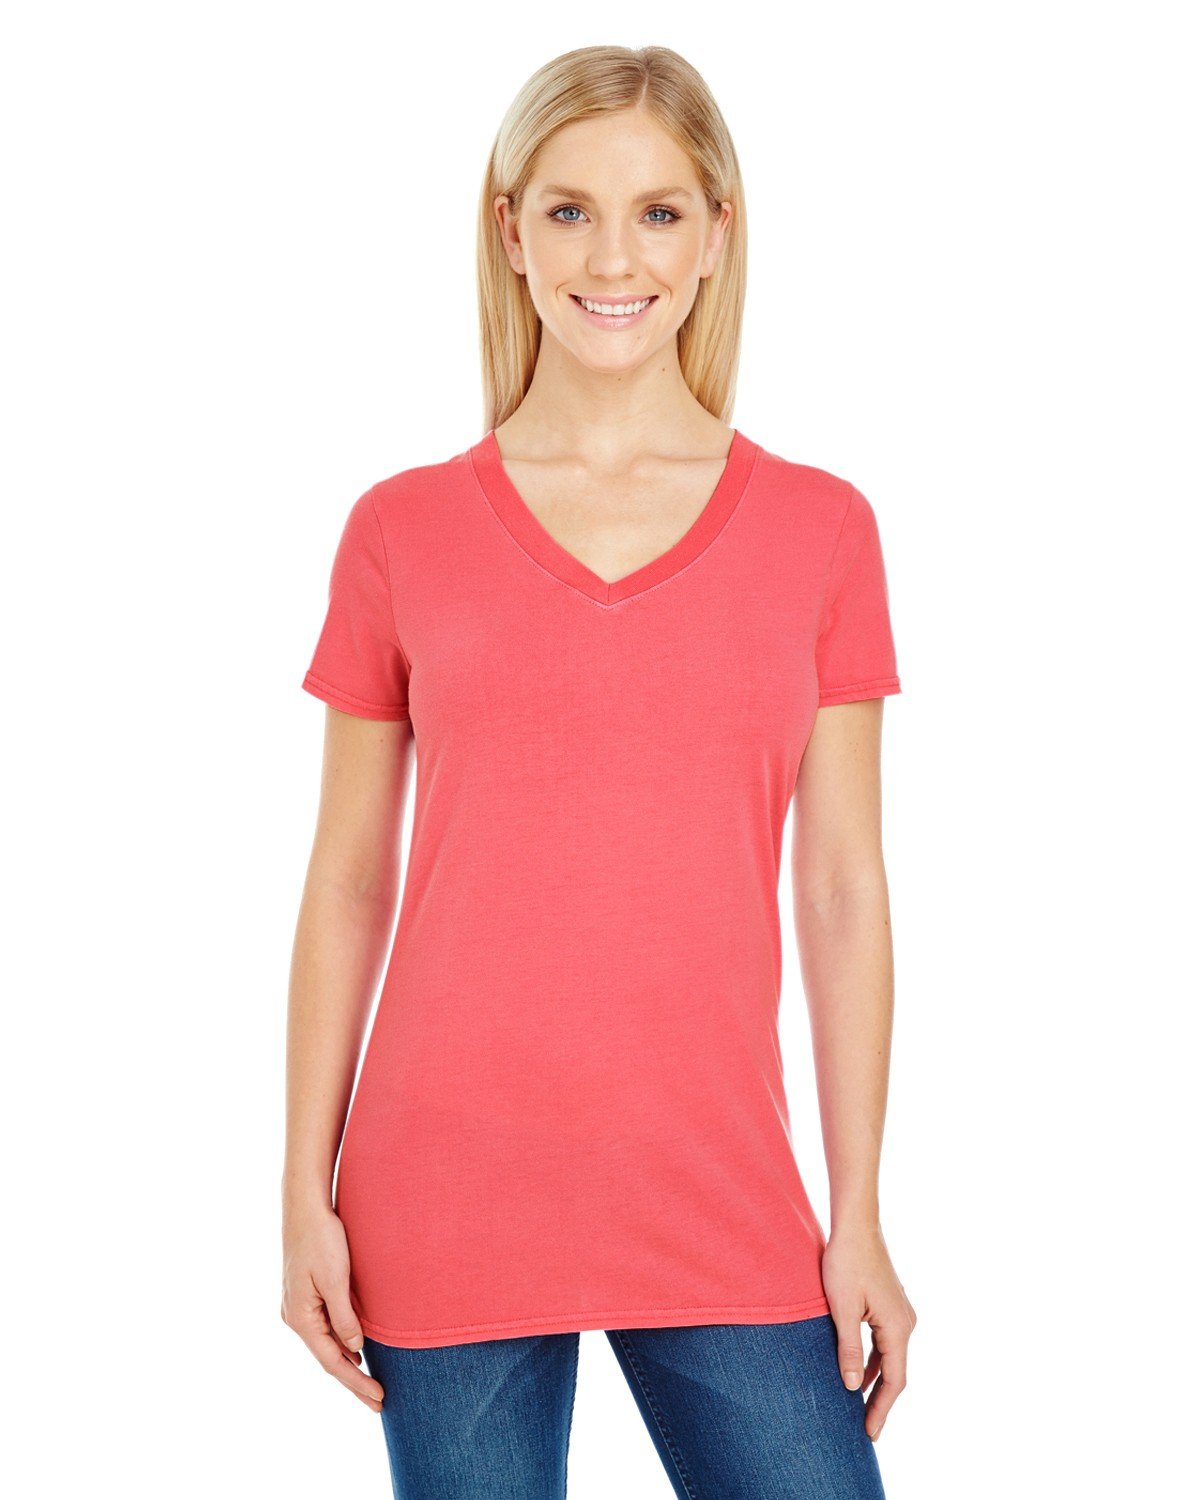 230B Threadfast Apparel RED